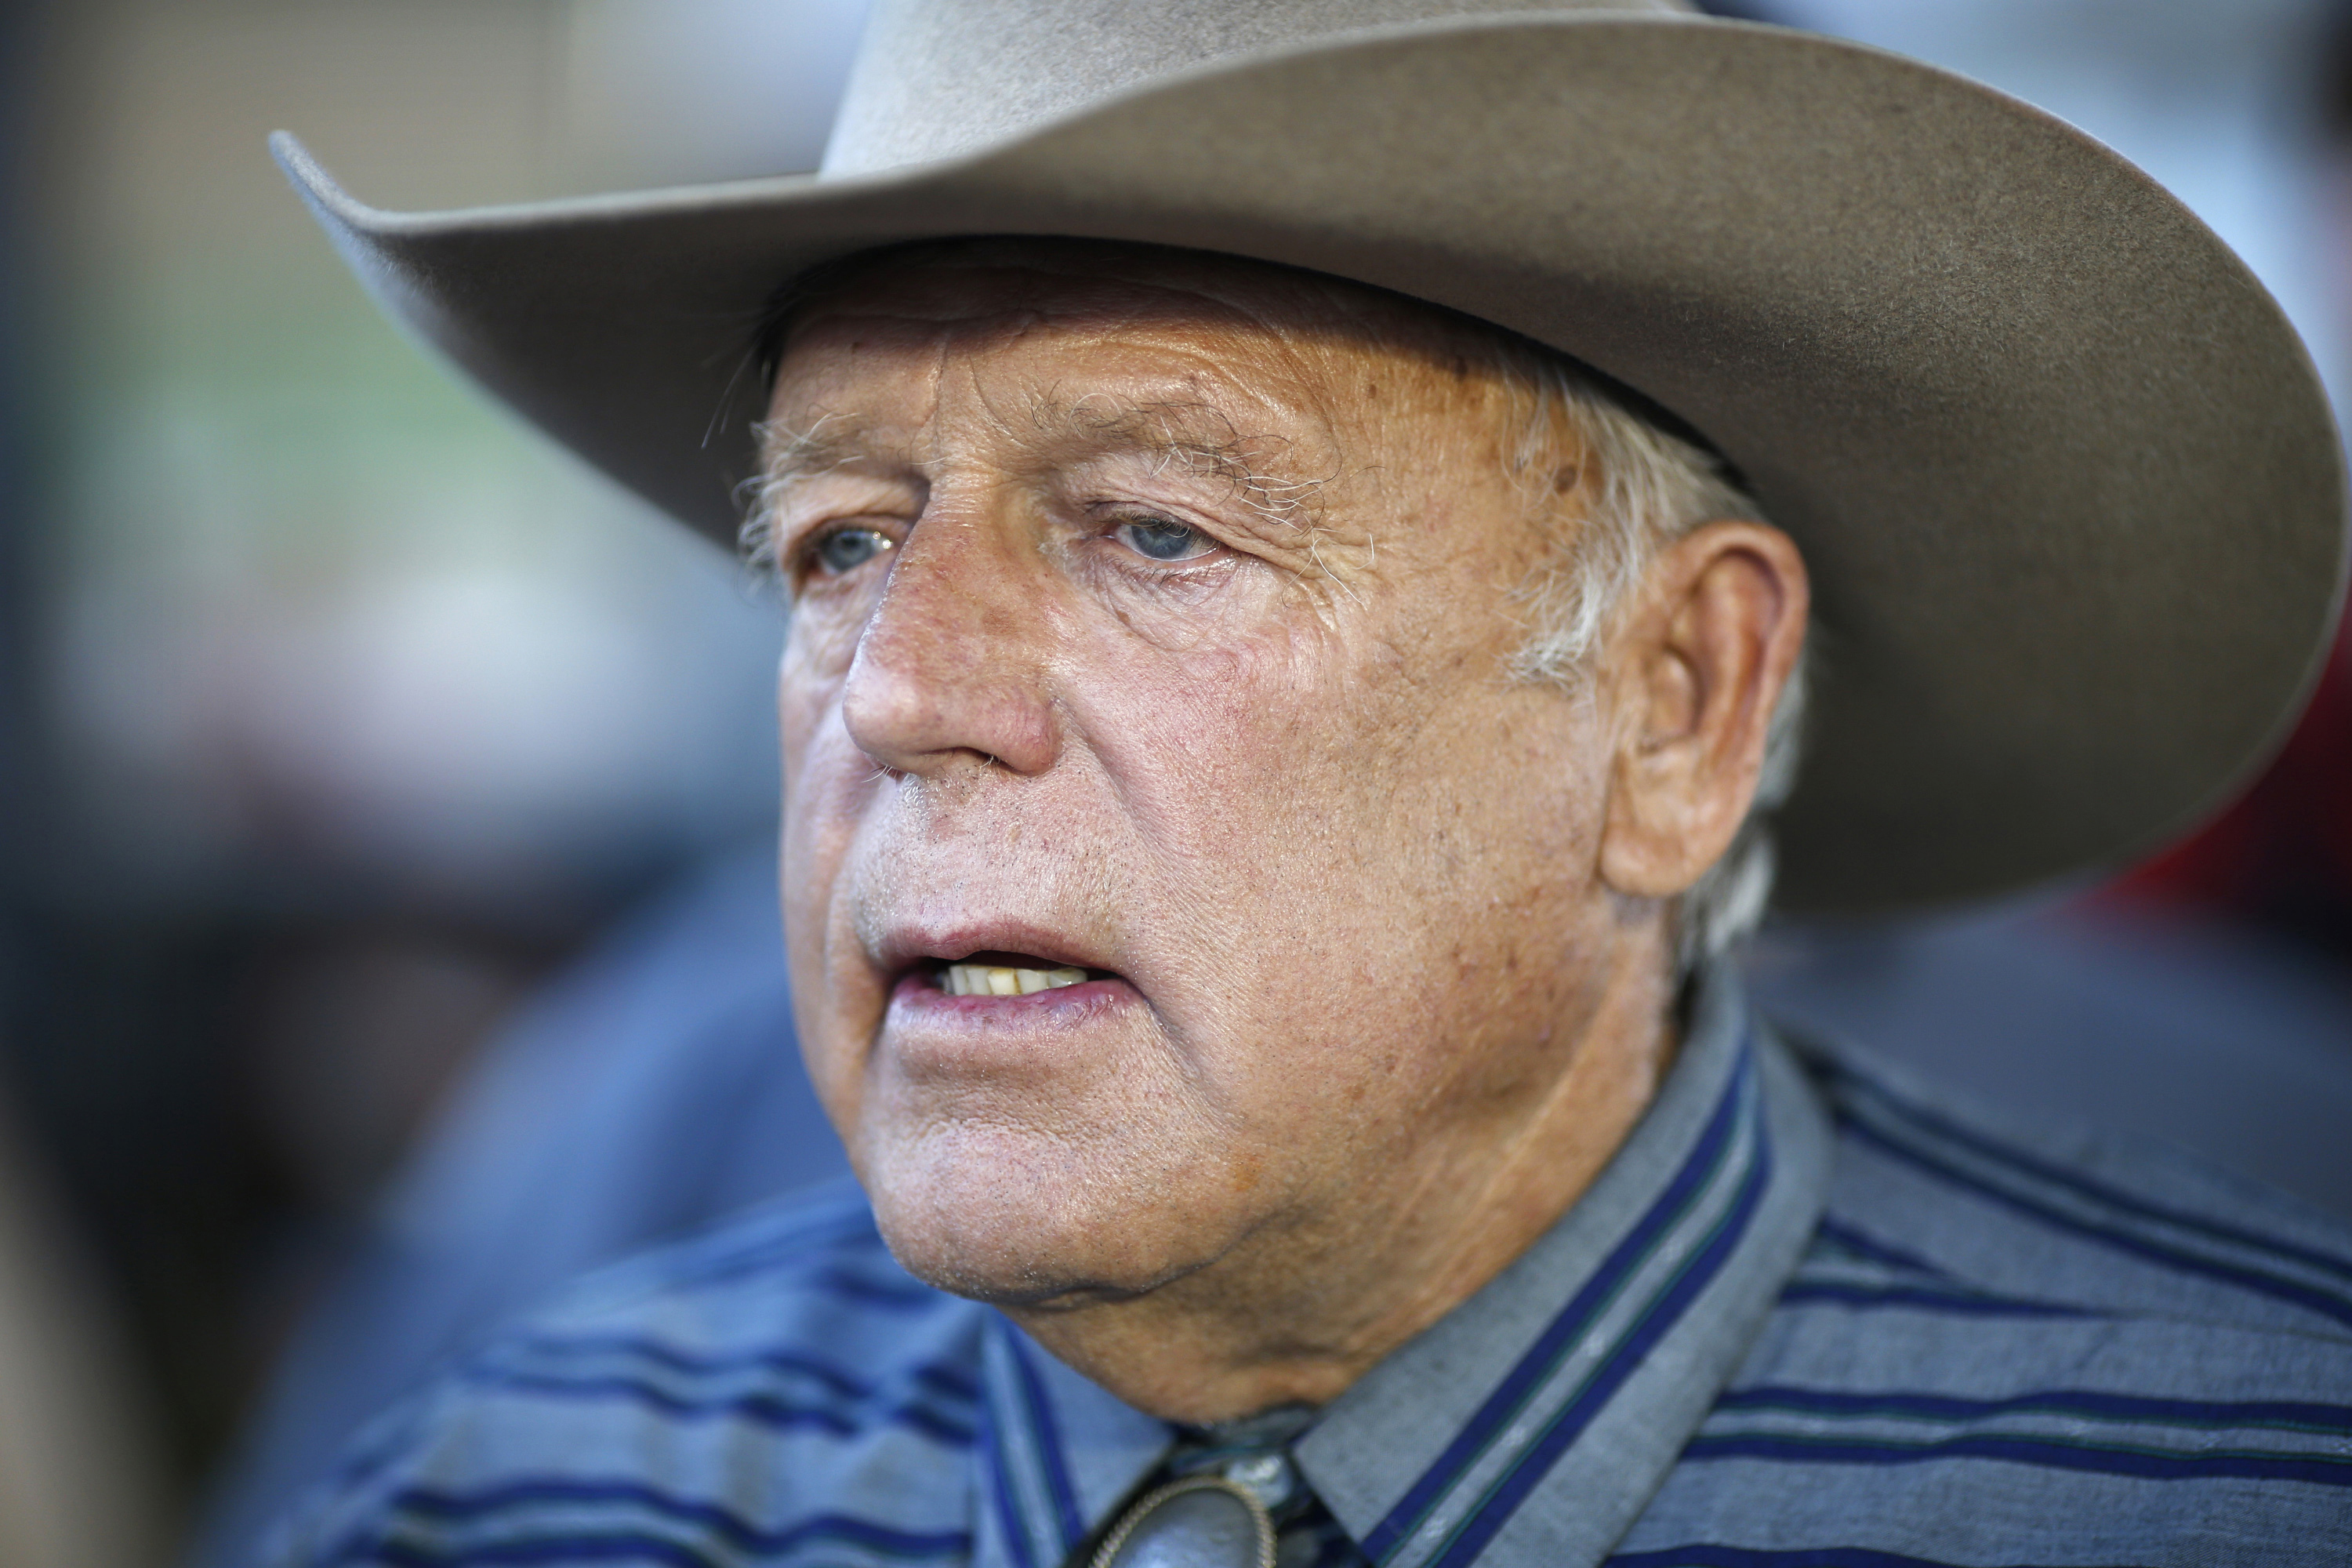 Gehrke: Cliven Bundy may be a free man, but he is also a cheat and a thief